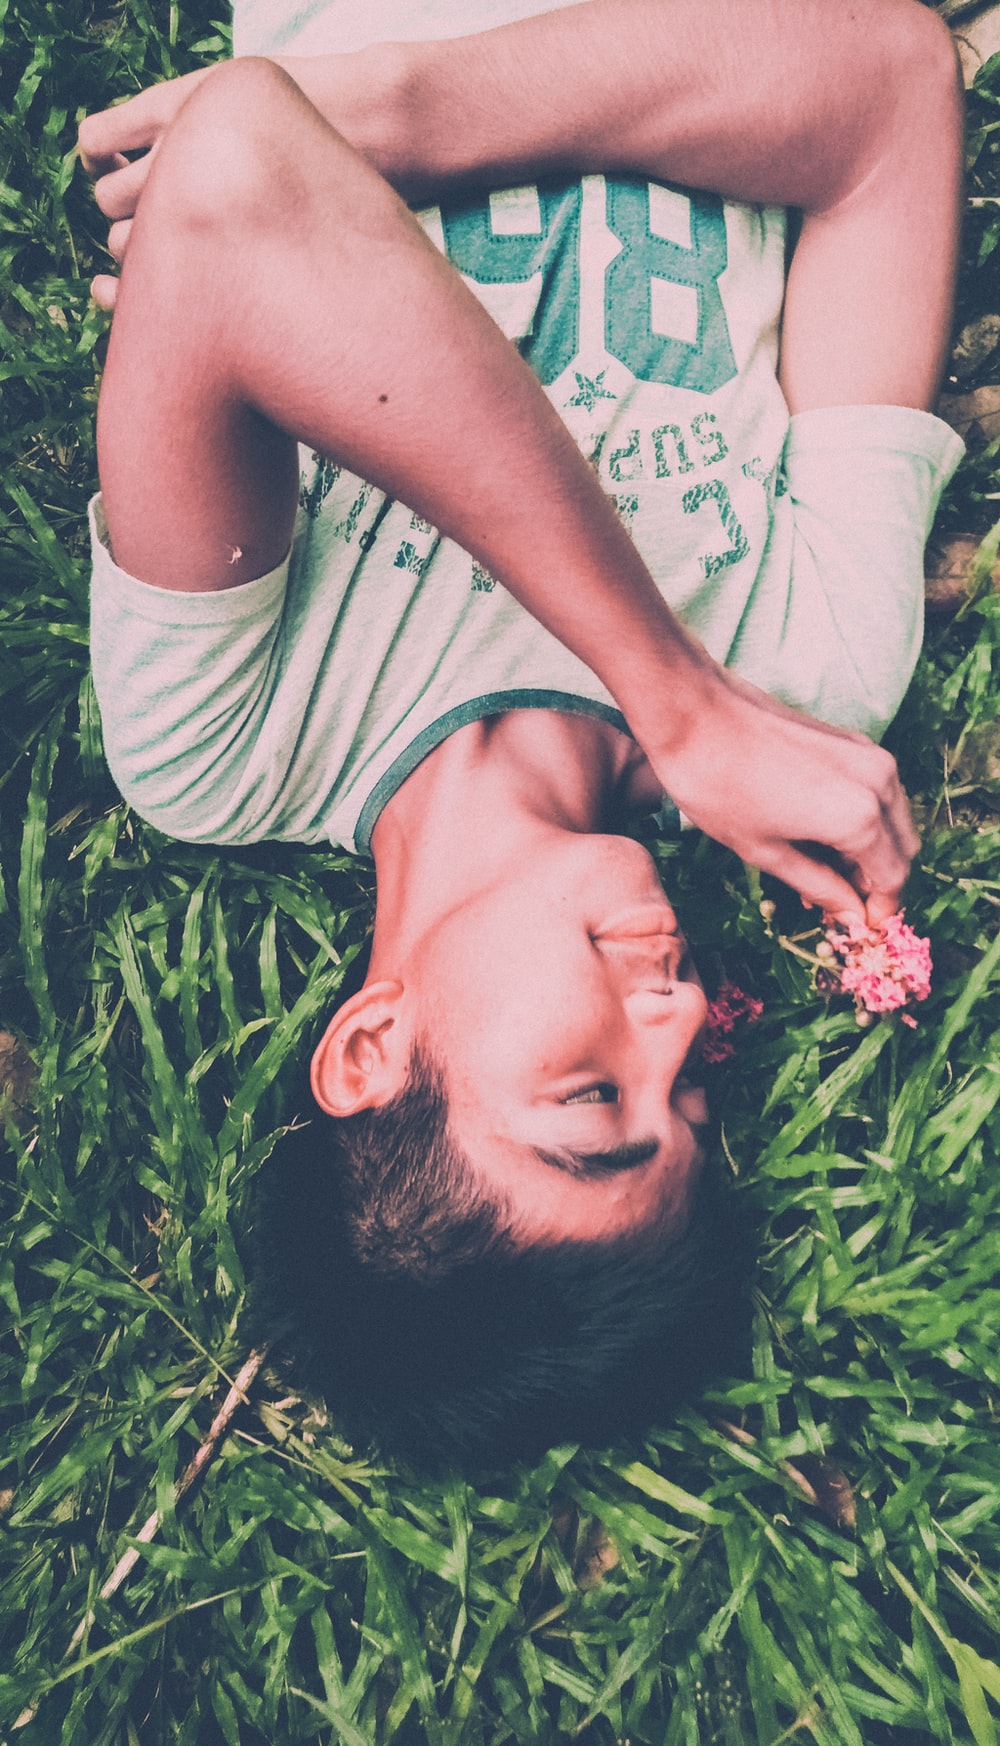 boy in white and green crew-neck t-shirt lying on ground